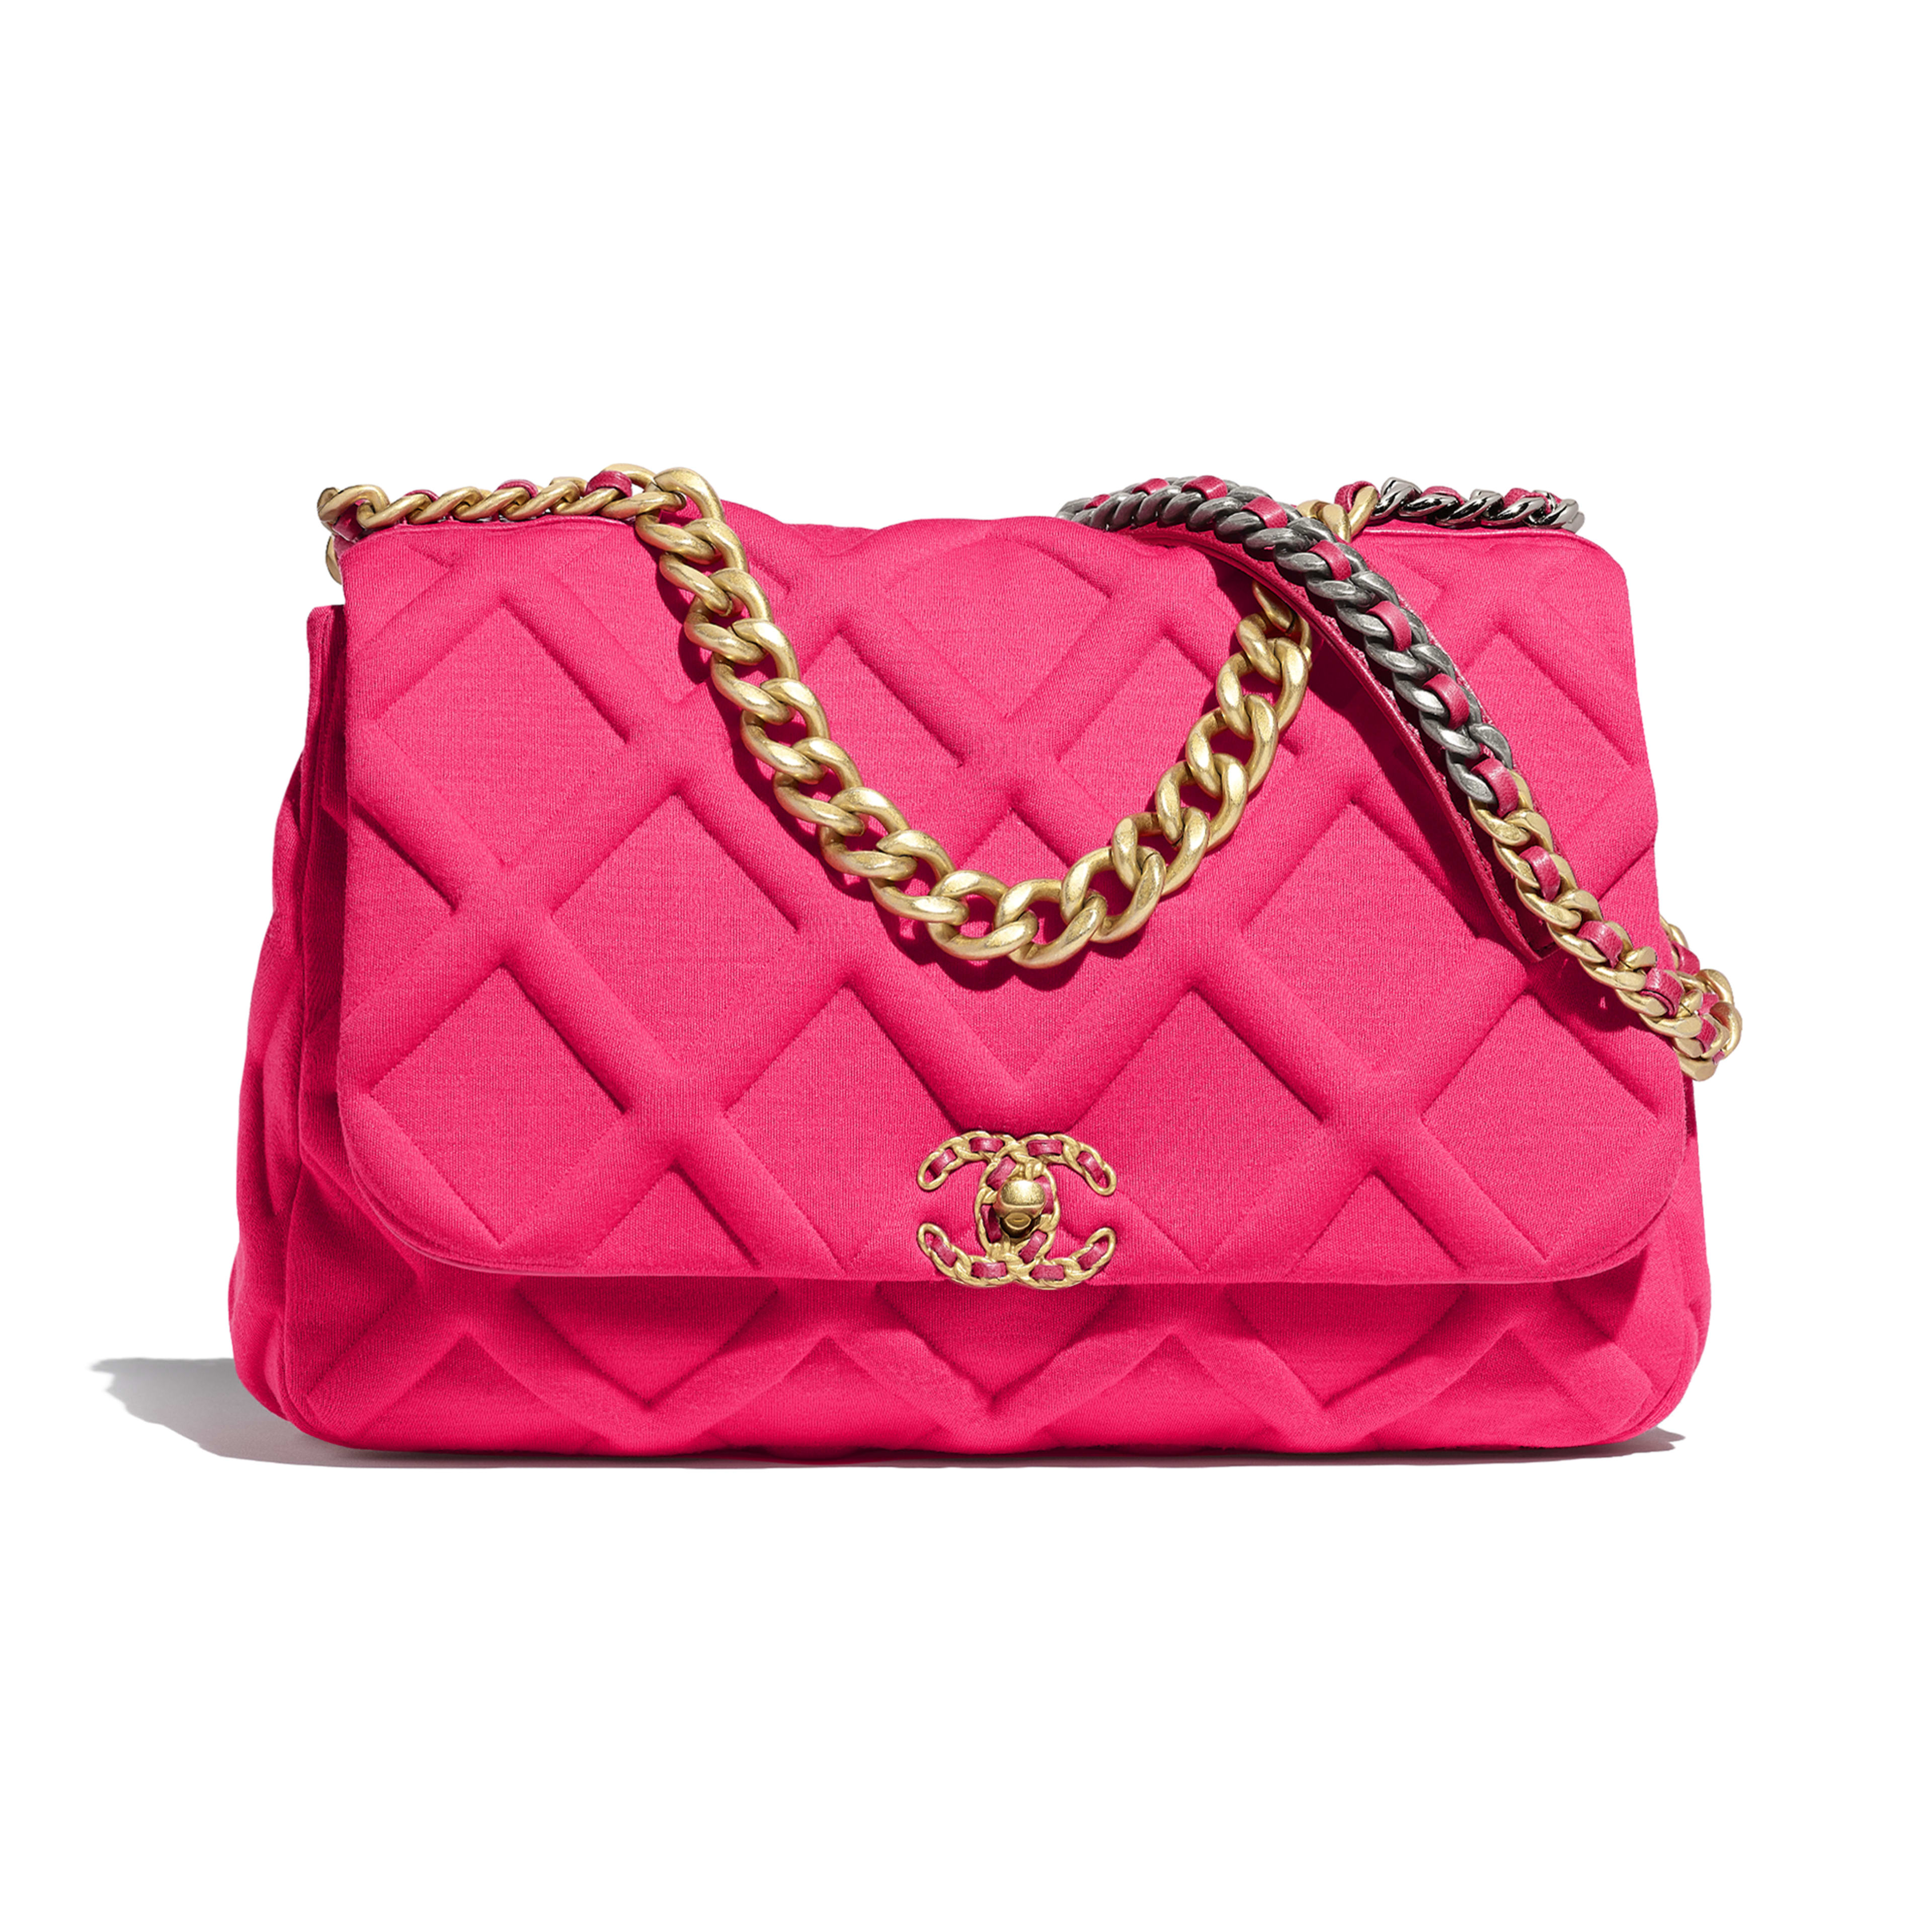 CHANEL 19 Maxi Flap Bag - Pink - Jersey, Gold-Tone, Silver-Tone & Ruthenium-Finish Metal - Default view - see full sized version